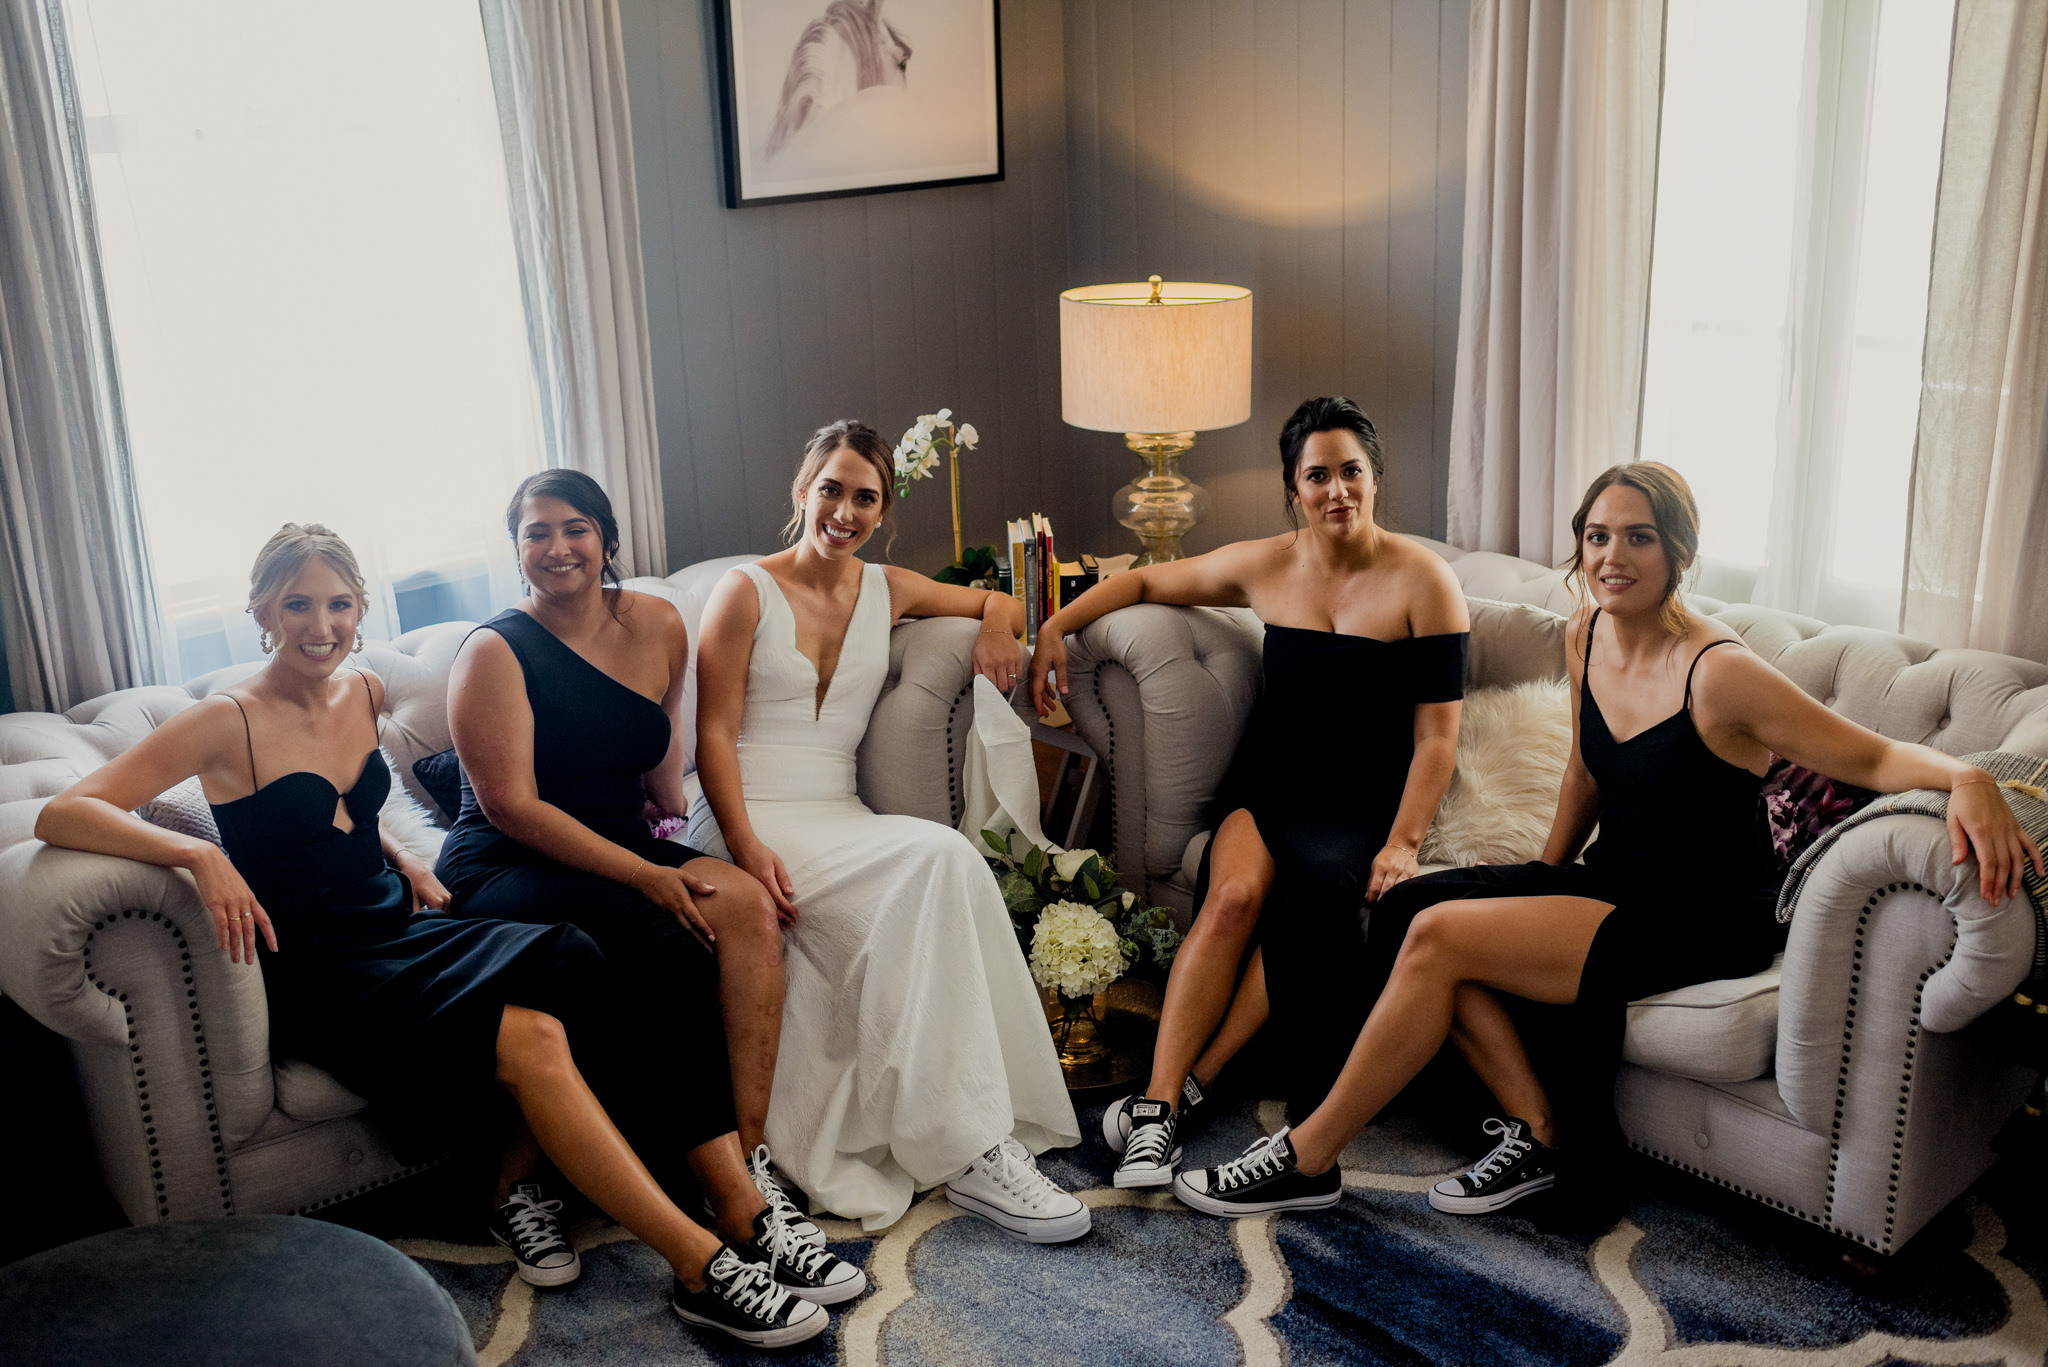 A bride and her bridesmaids sit on lounges and show off their sneakers